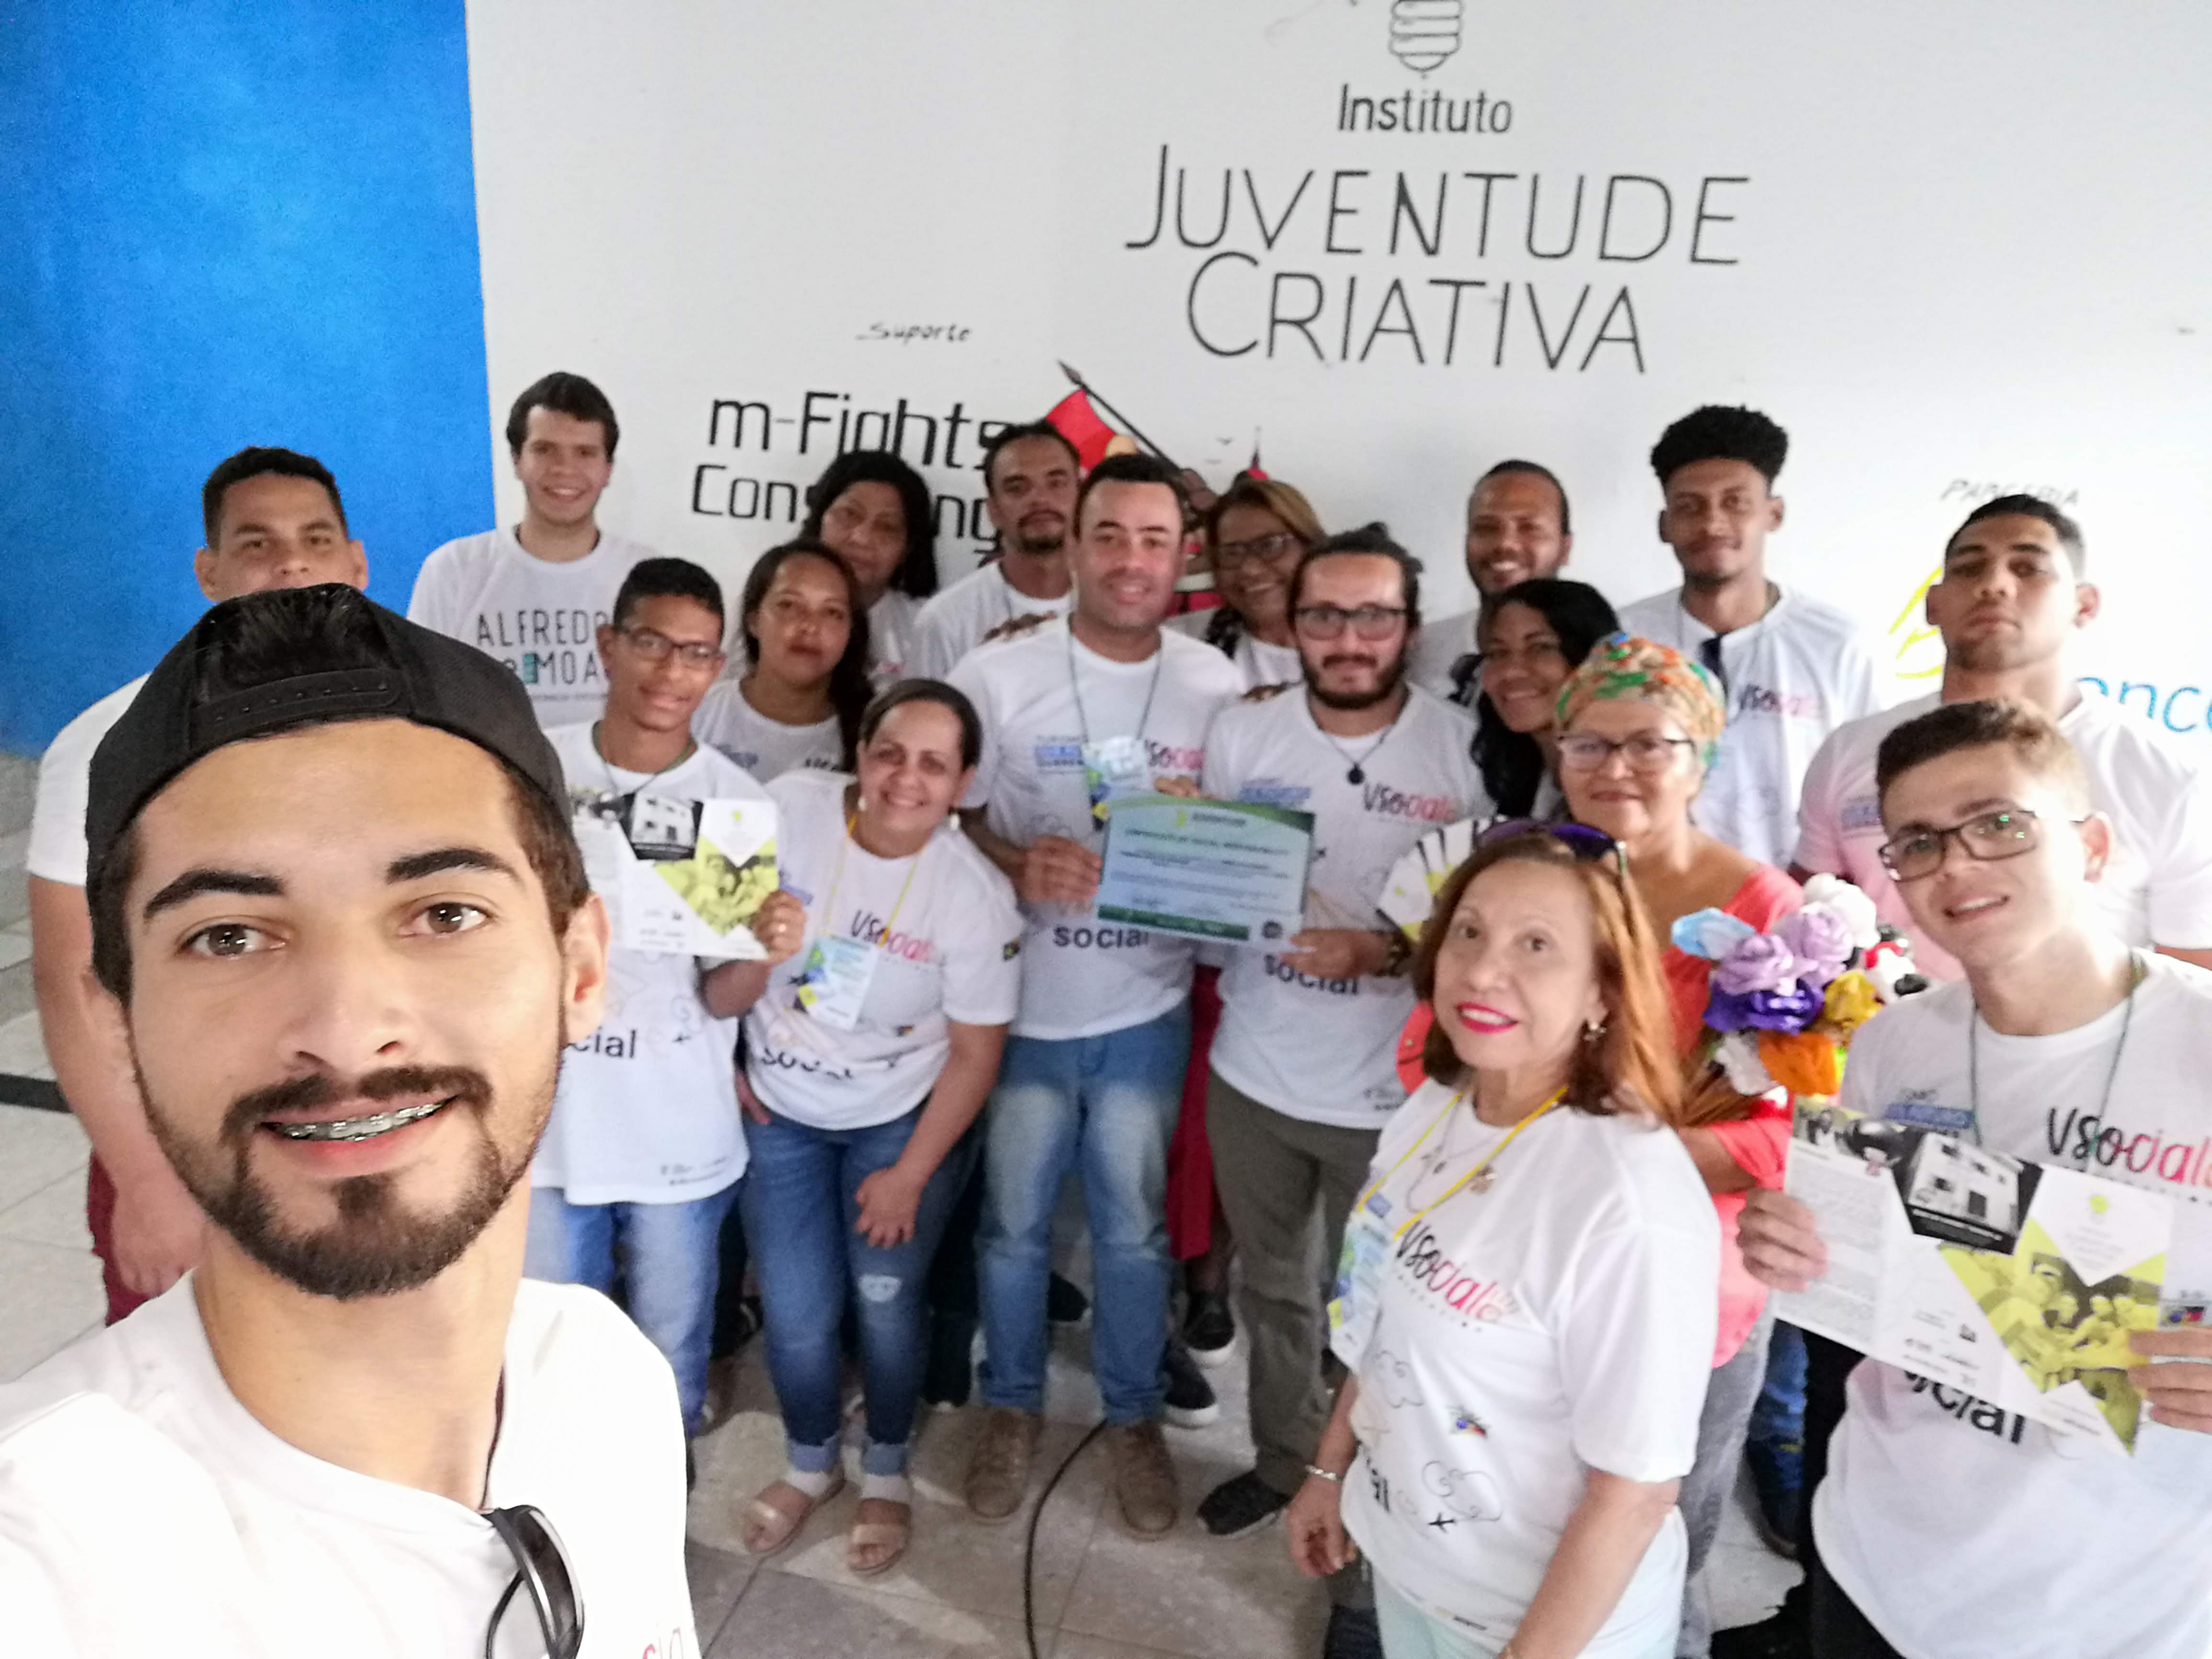 The project of Juventude Creativa is a project that seeks to generate alternatives of life for the young people of Sao Lorenzo Da Mata, a quite vulnerable place in Recife Brazil, through tourism, sport and pedagogy they have managed to design a project of life for the young people far from criminality, drugs and the streets